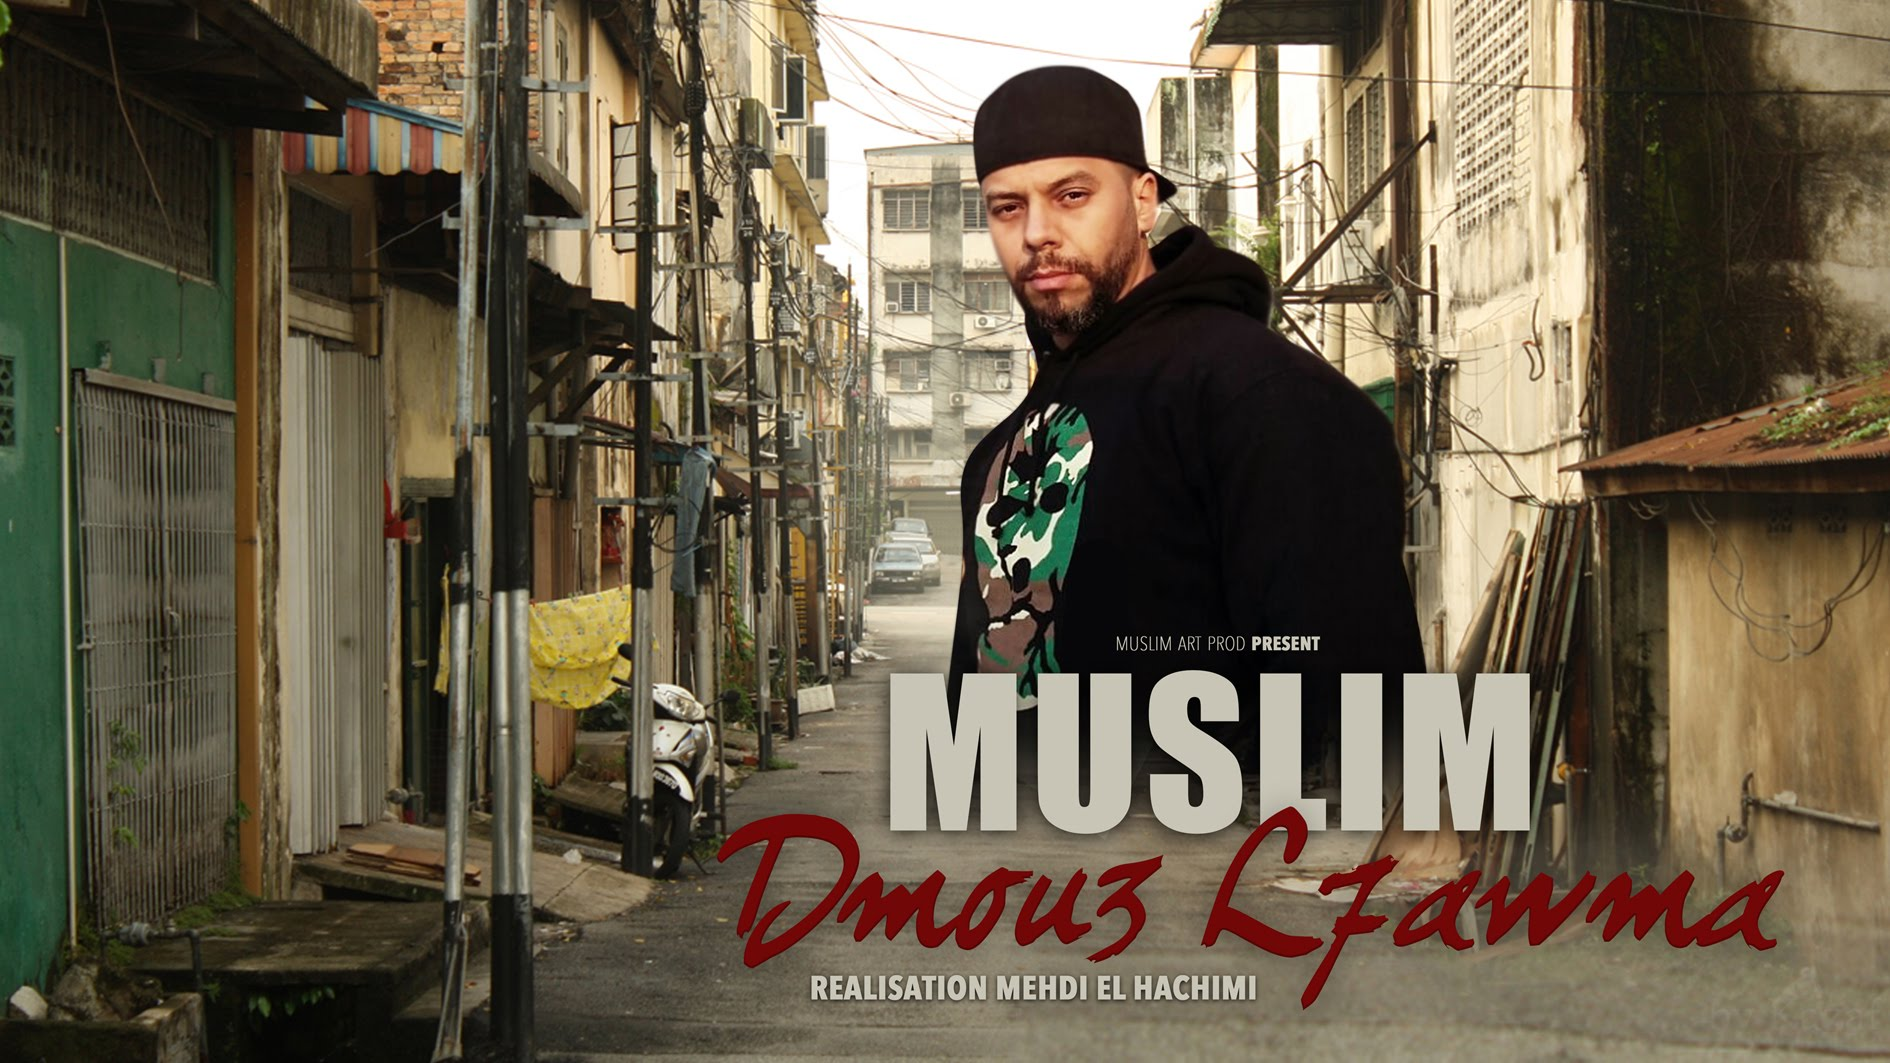 muslim-dmou3-l7awma-official-video